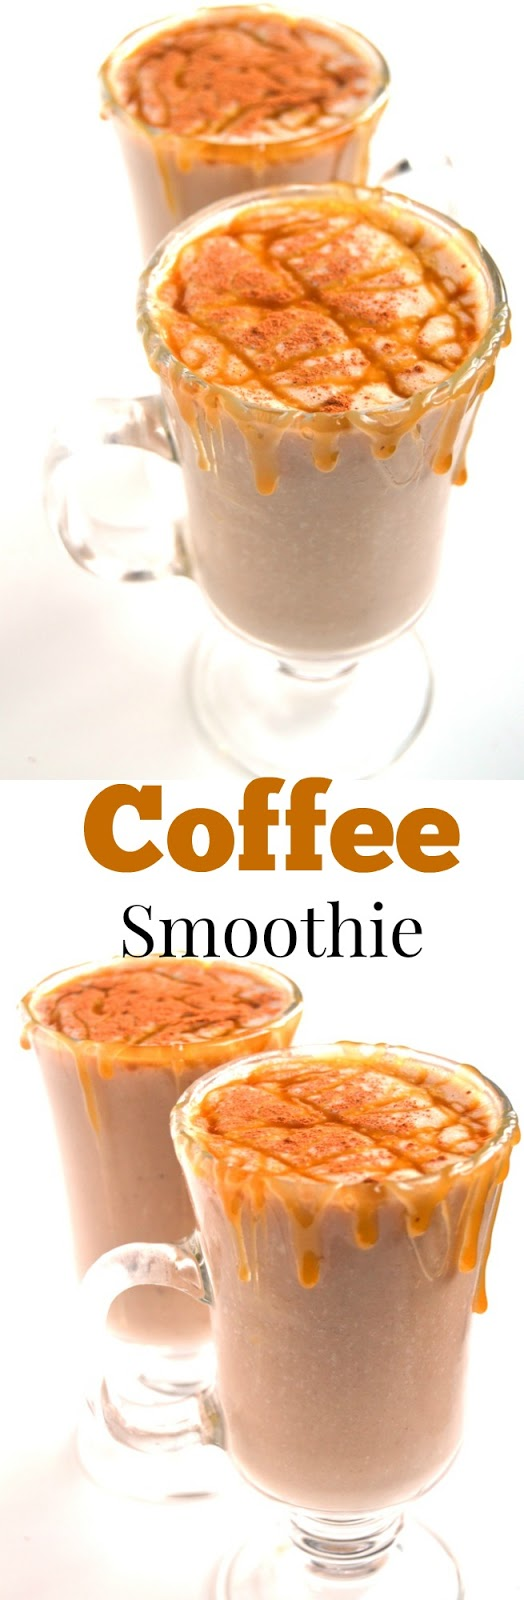 Coffee Smoothie is a 5-ingredient healthy smoothie that is ready in just 2 minutes and makes the perfect breakfast or snack! www.nutritionistreviews.com